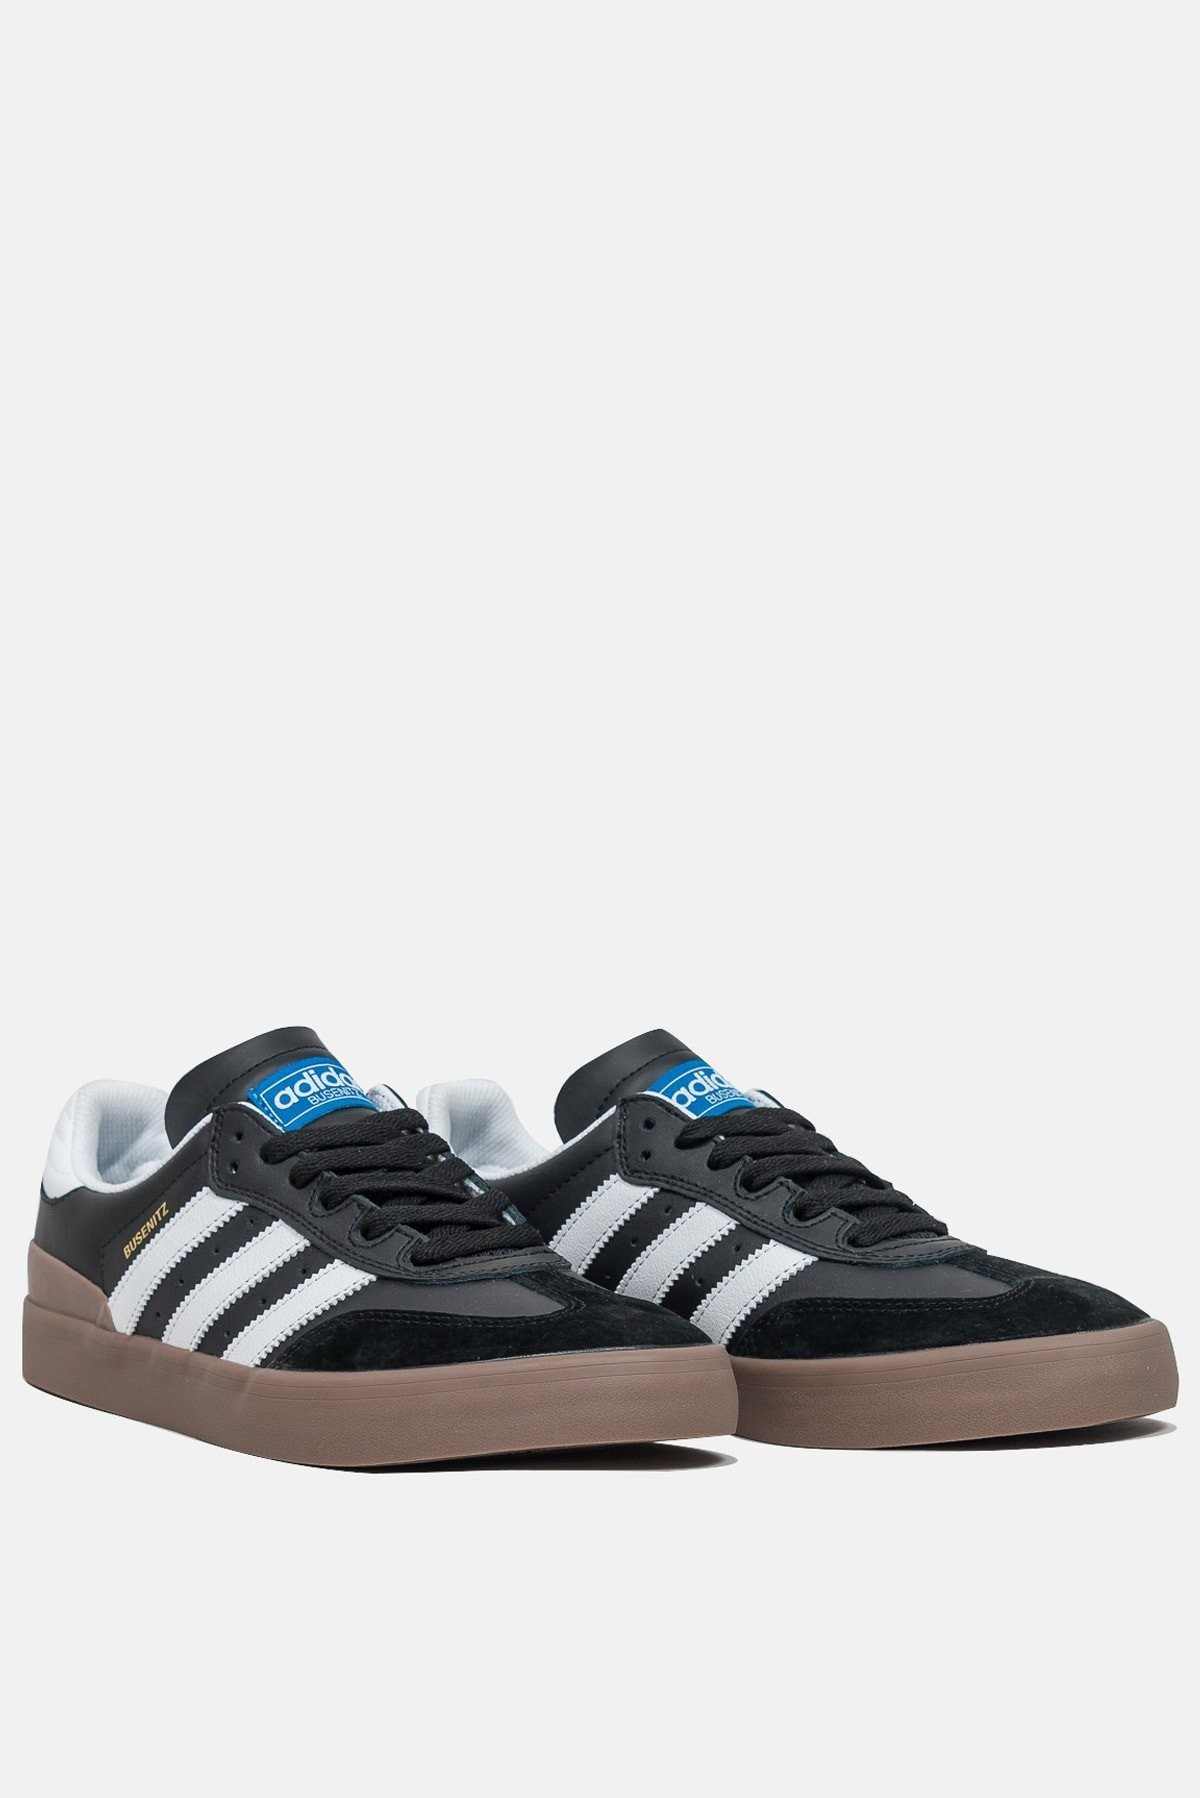 Schuhe Adidas available from RX Priory Vulc Buzenitz XZNkn0w8OP